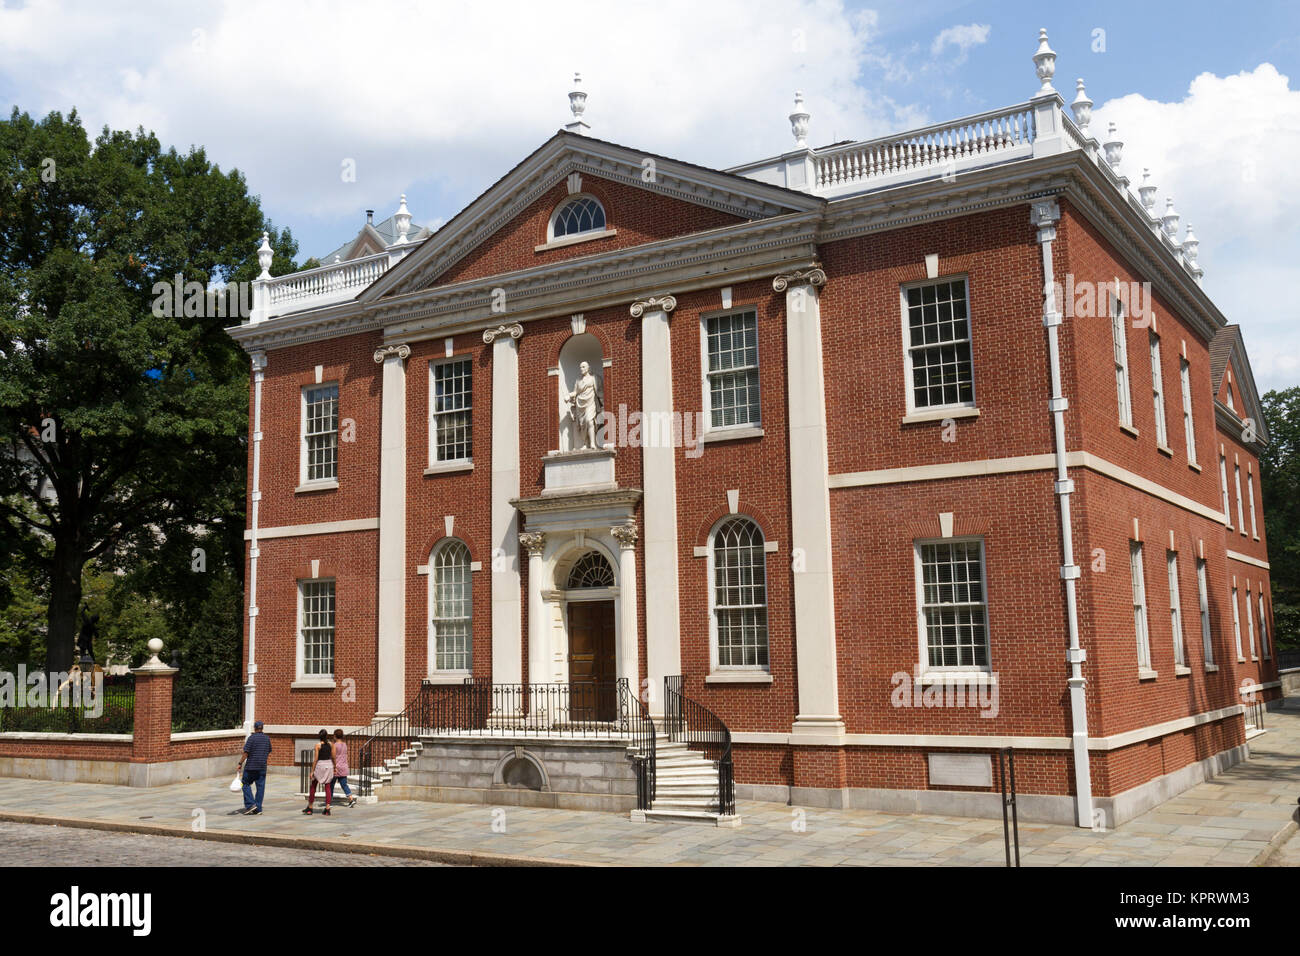 Library Hall, part of Independence National Historical Park, Philadelphia, Pennsylvania, United States. - Stock Image